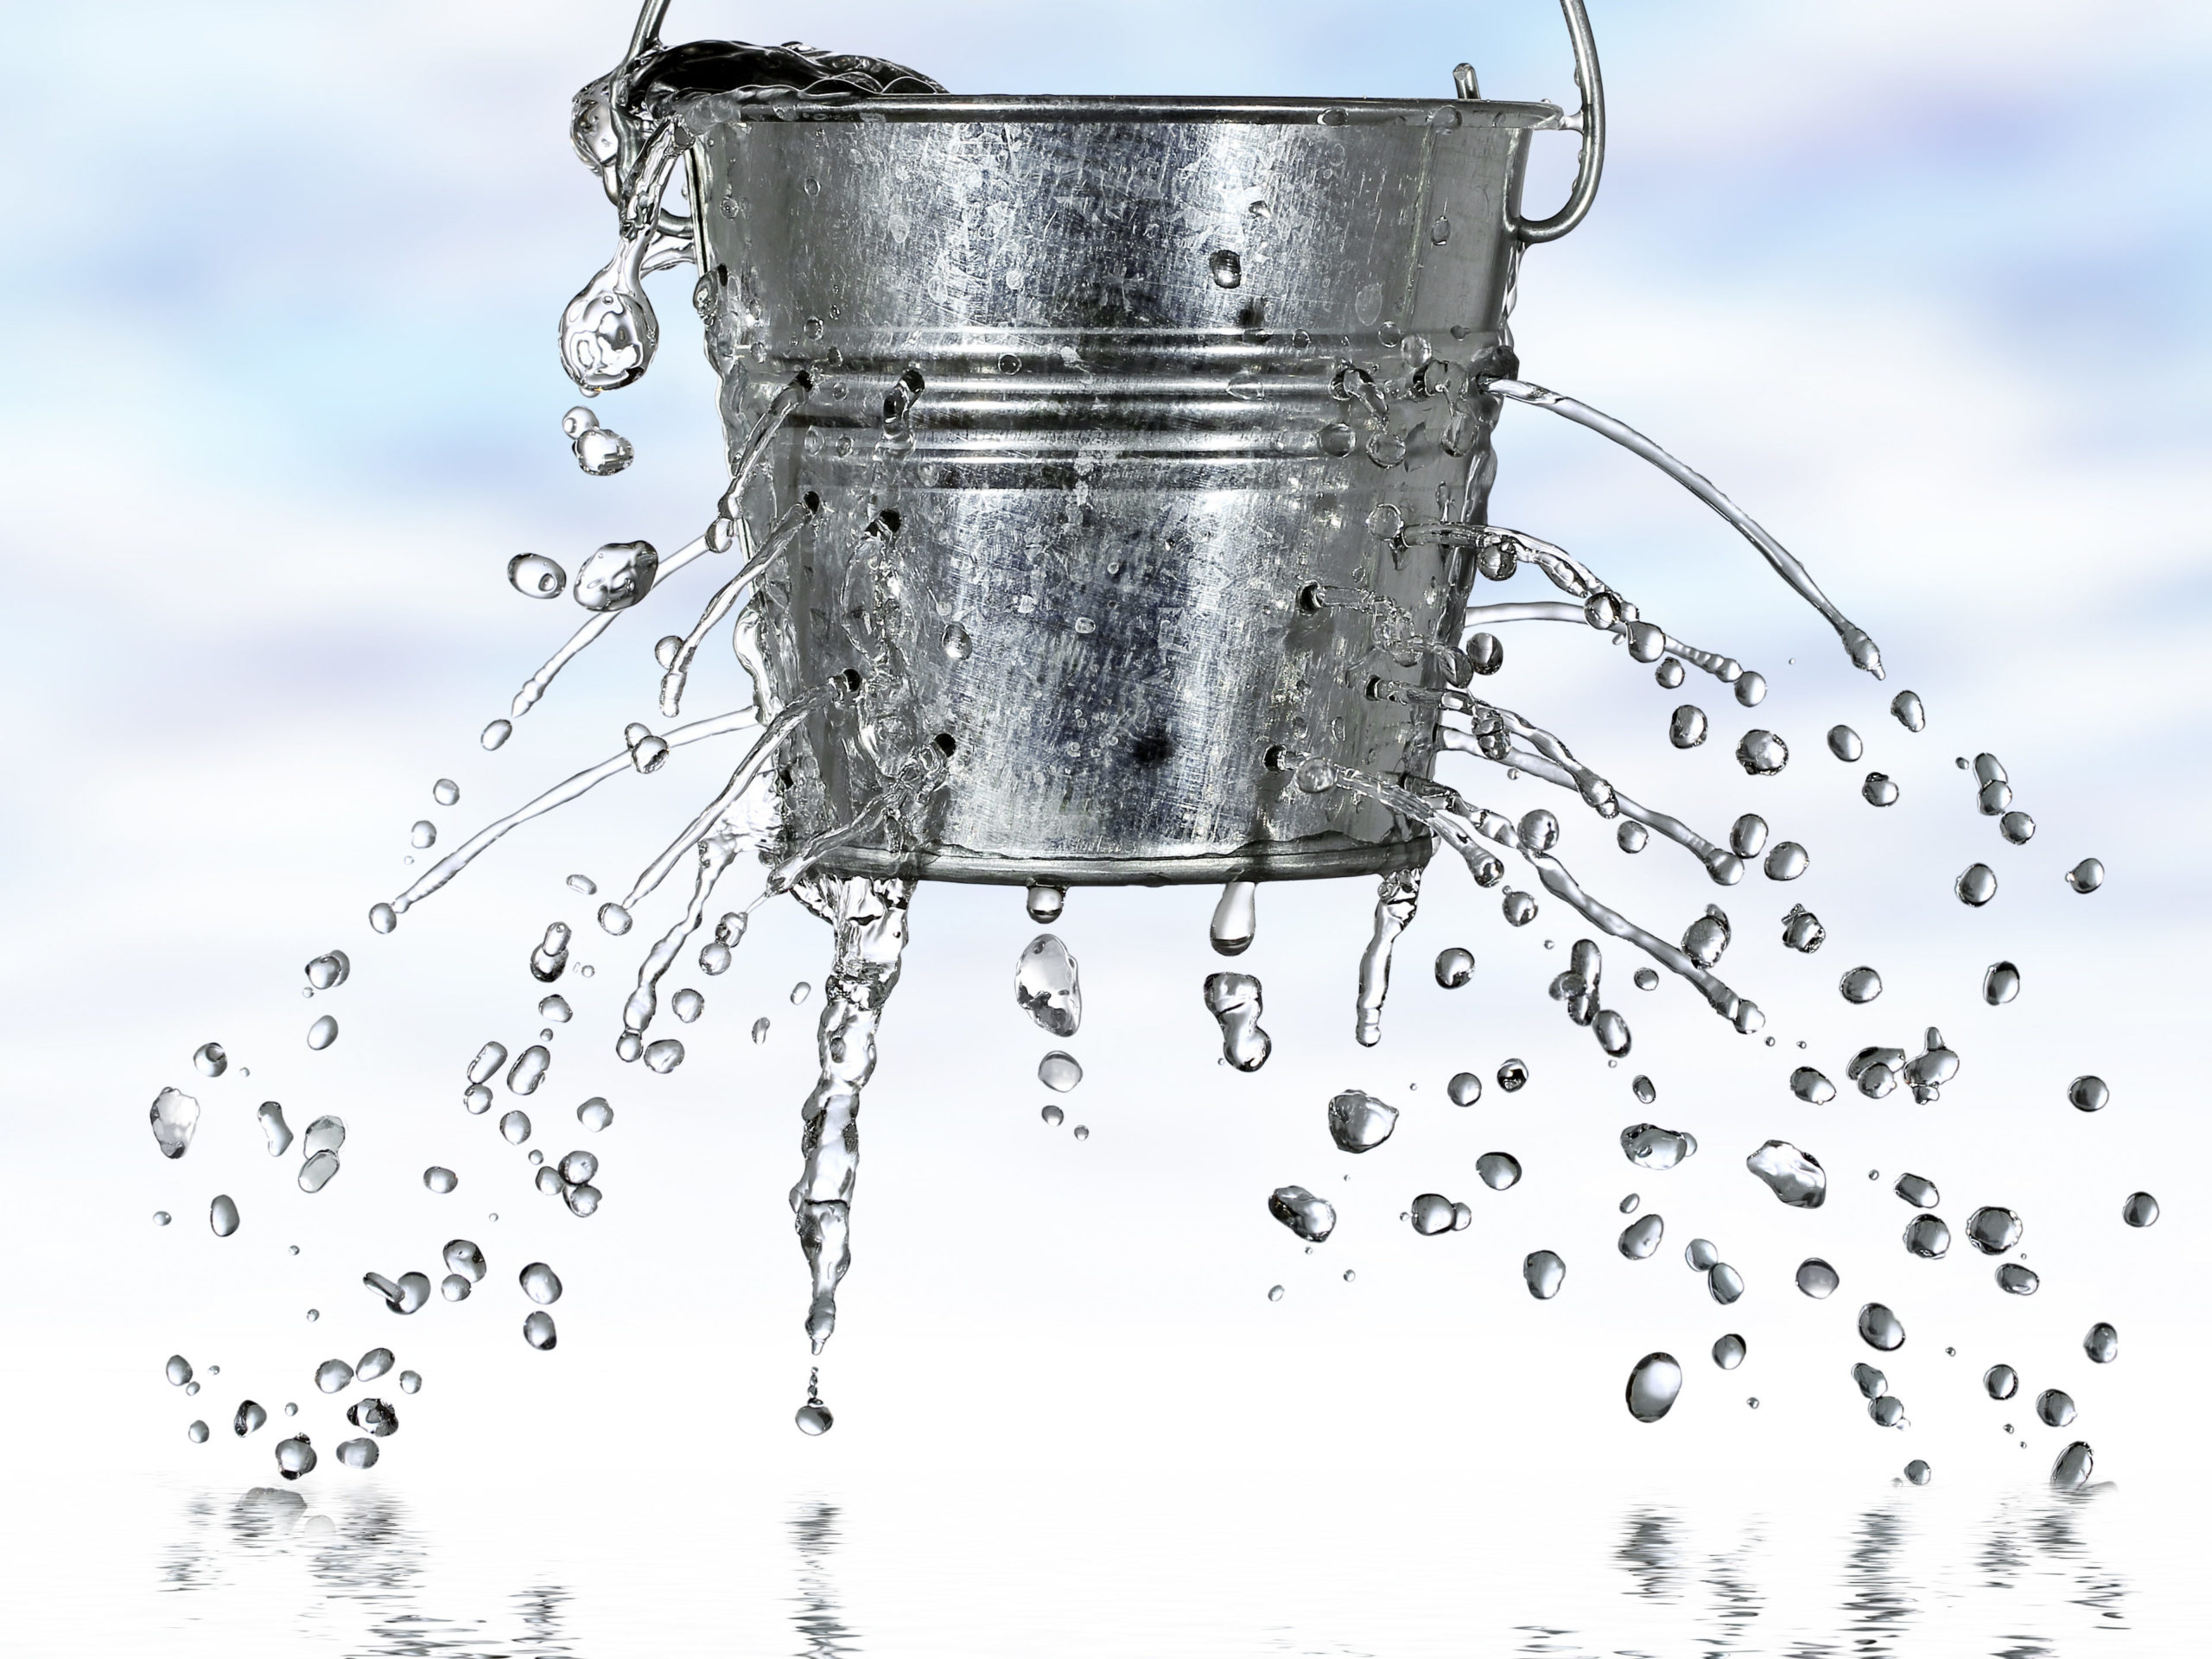 When kidneys don't work they become leaky like this bucket with holes in it and allow things to pass through that shouldn't come through.